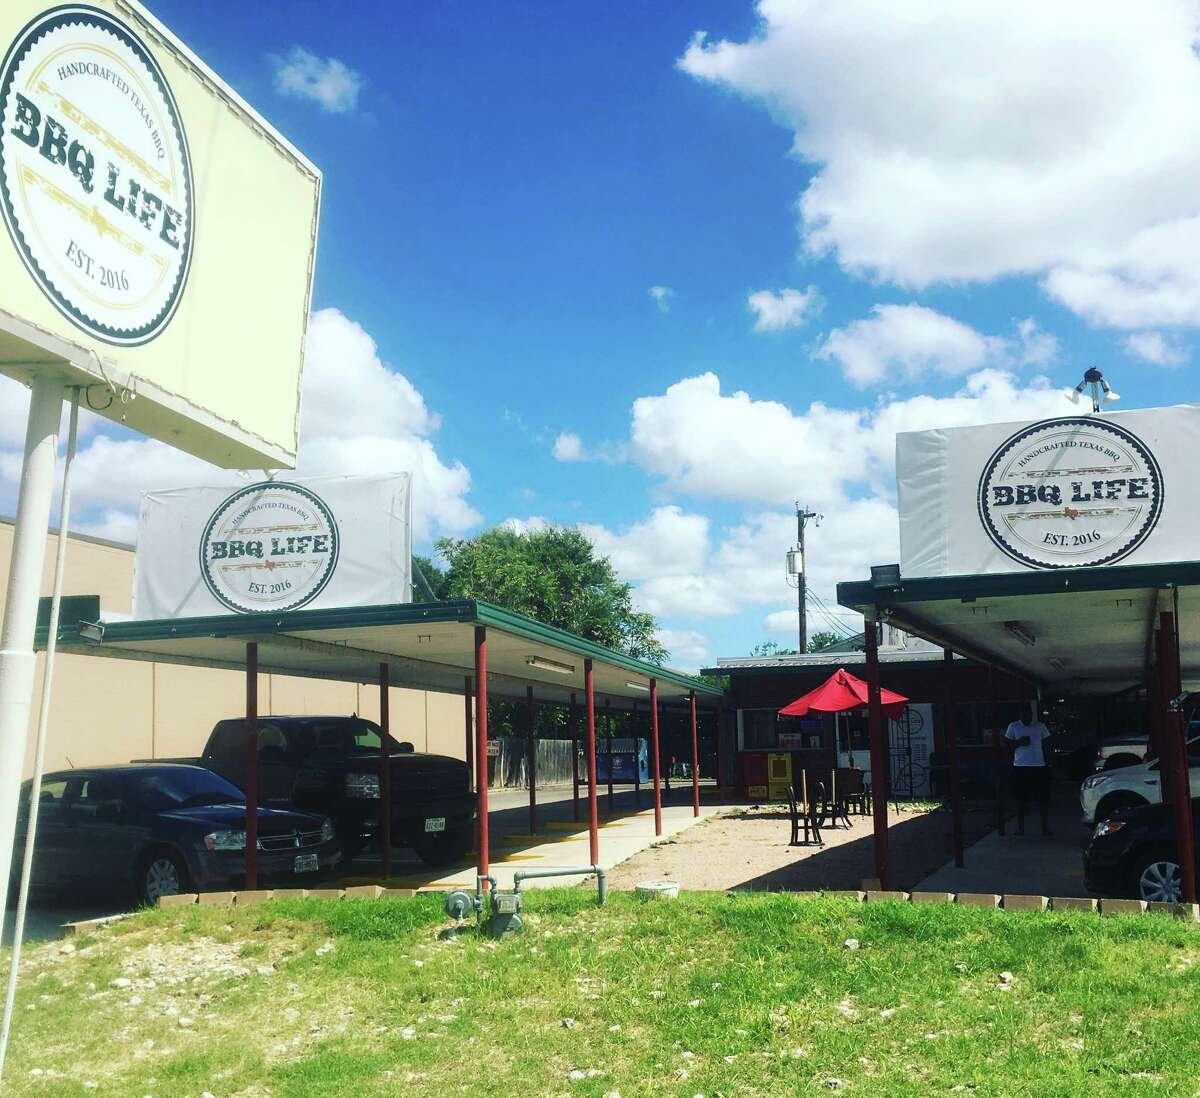 BBQ Life is located at 902 S. W.W. White Road and has been in business since 2016.